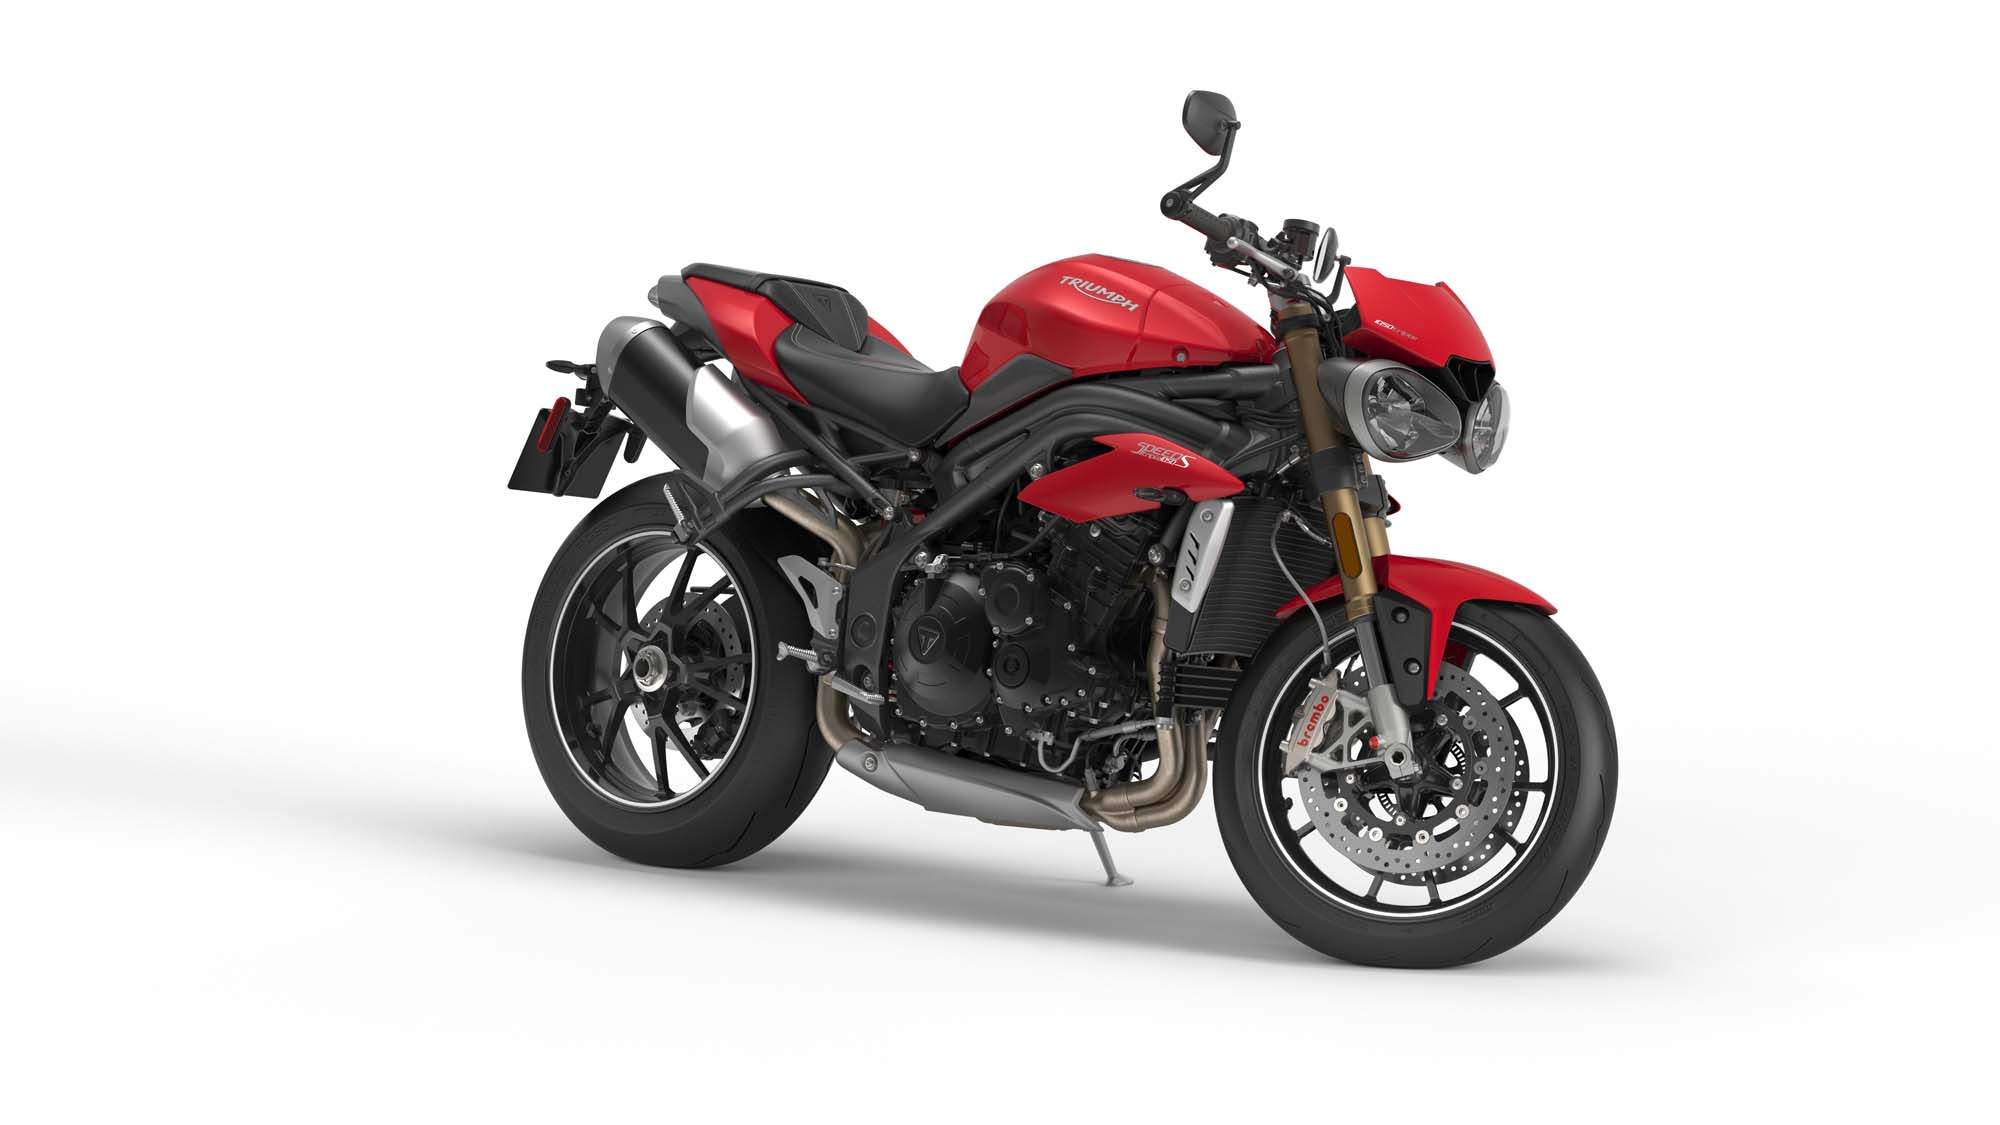 triumph speed triple s all technical data of the model speed triple s from triumph. Black Bedroom Furniture Sets. Home Design Ideas